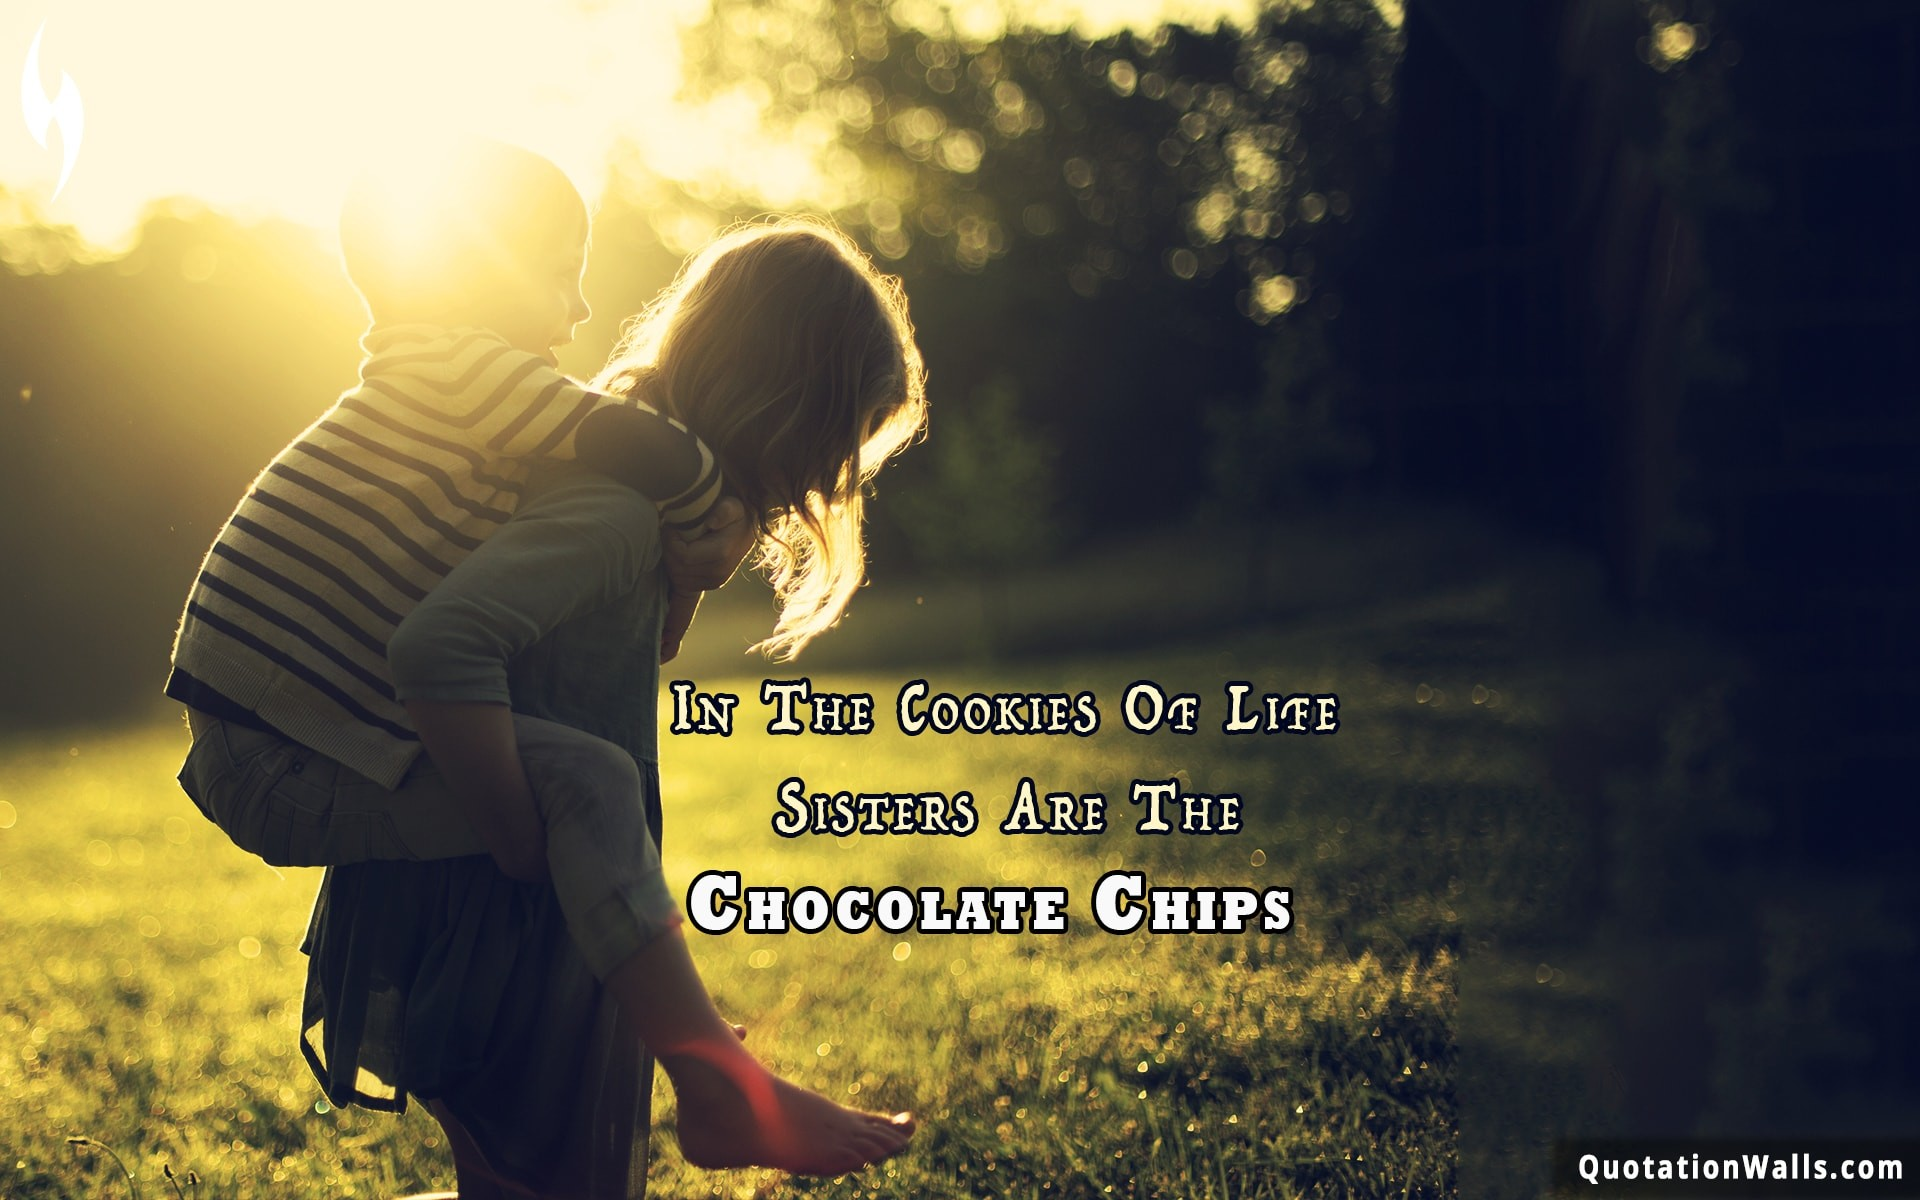 1920x1200 Love quote mobile: In the cookies of life, sisters are the chocolate chips.